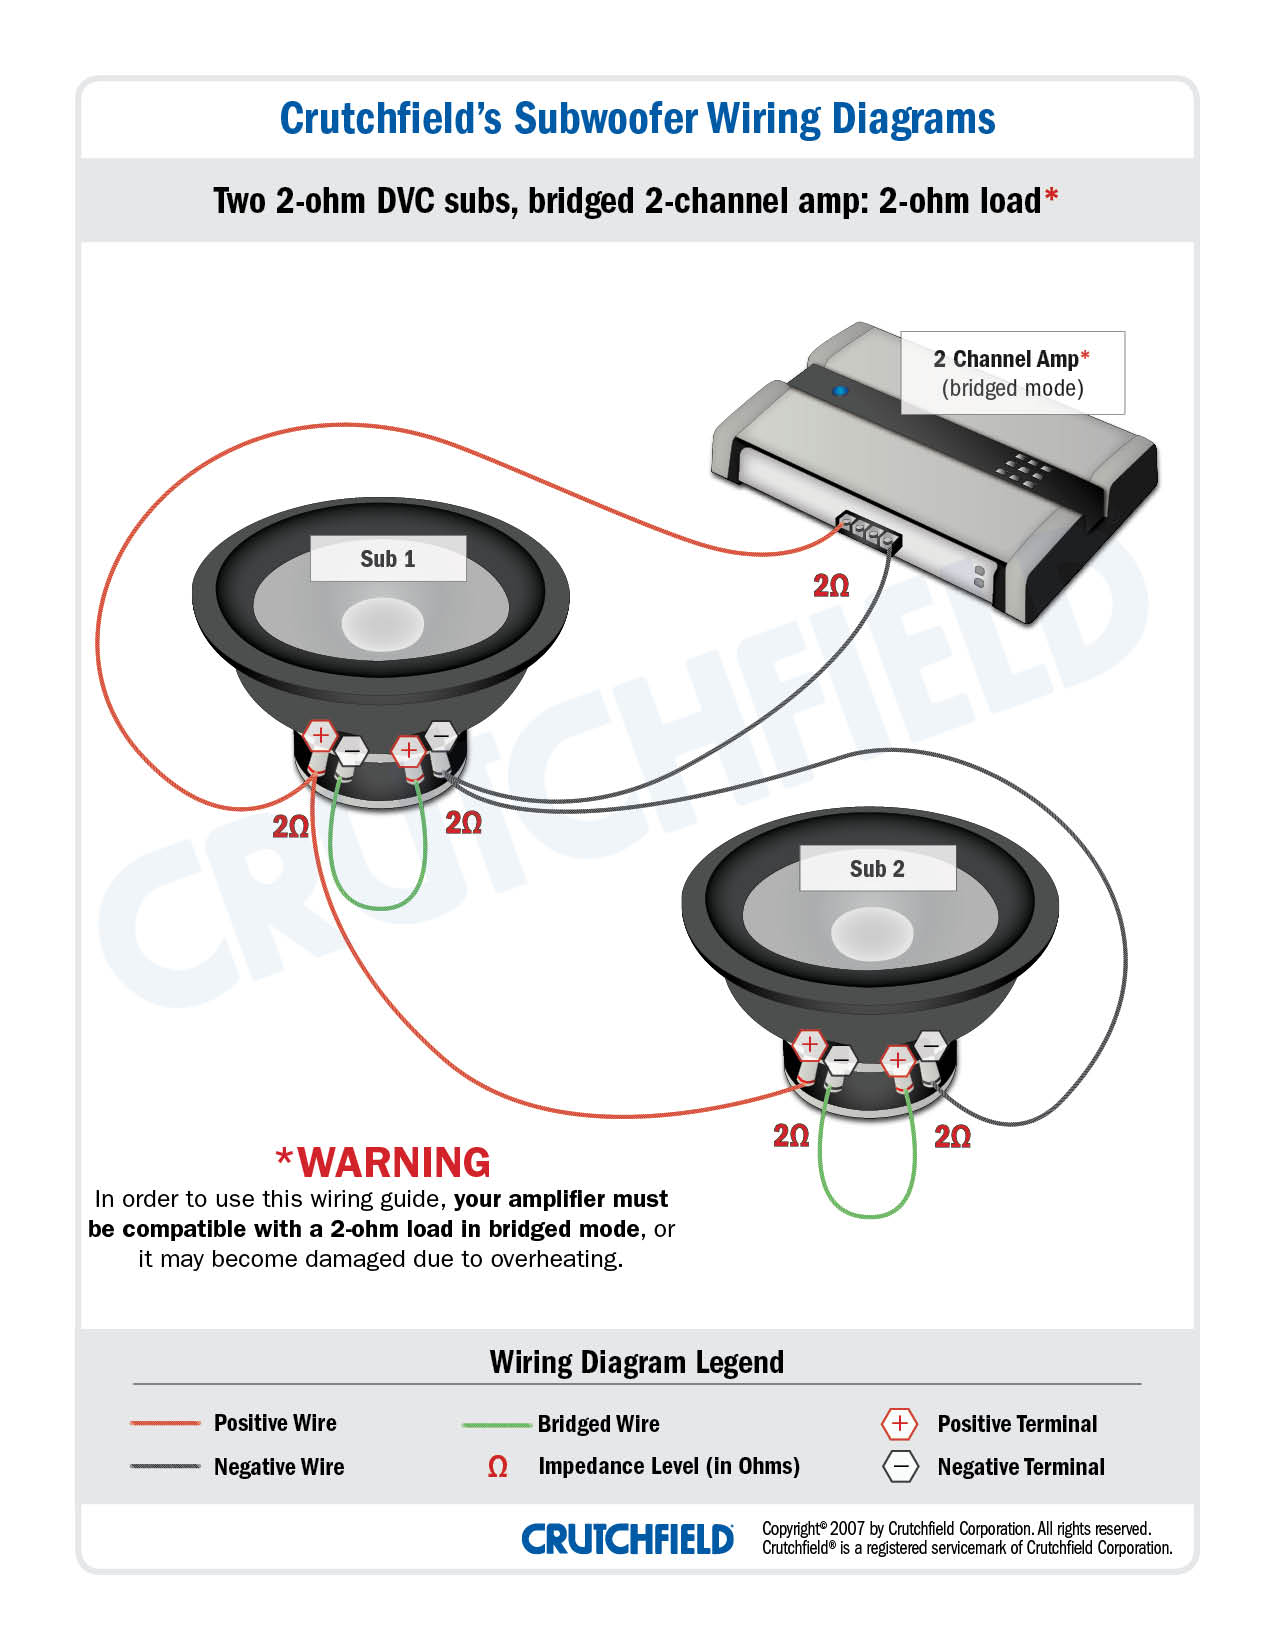 subwoofer wiring diagrams rh crutchfield com subwoofer wiring wizard subwoofer wiring diagrams